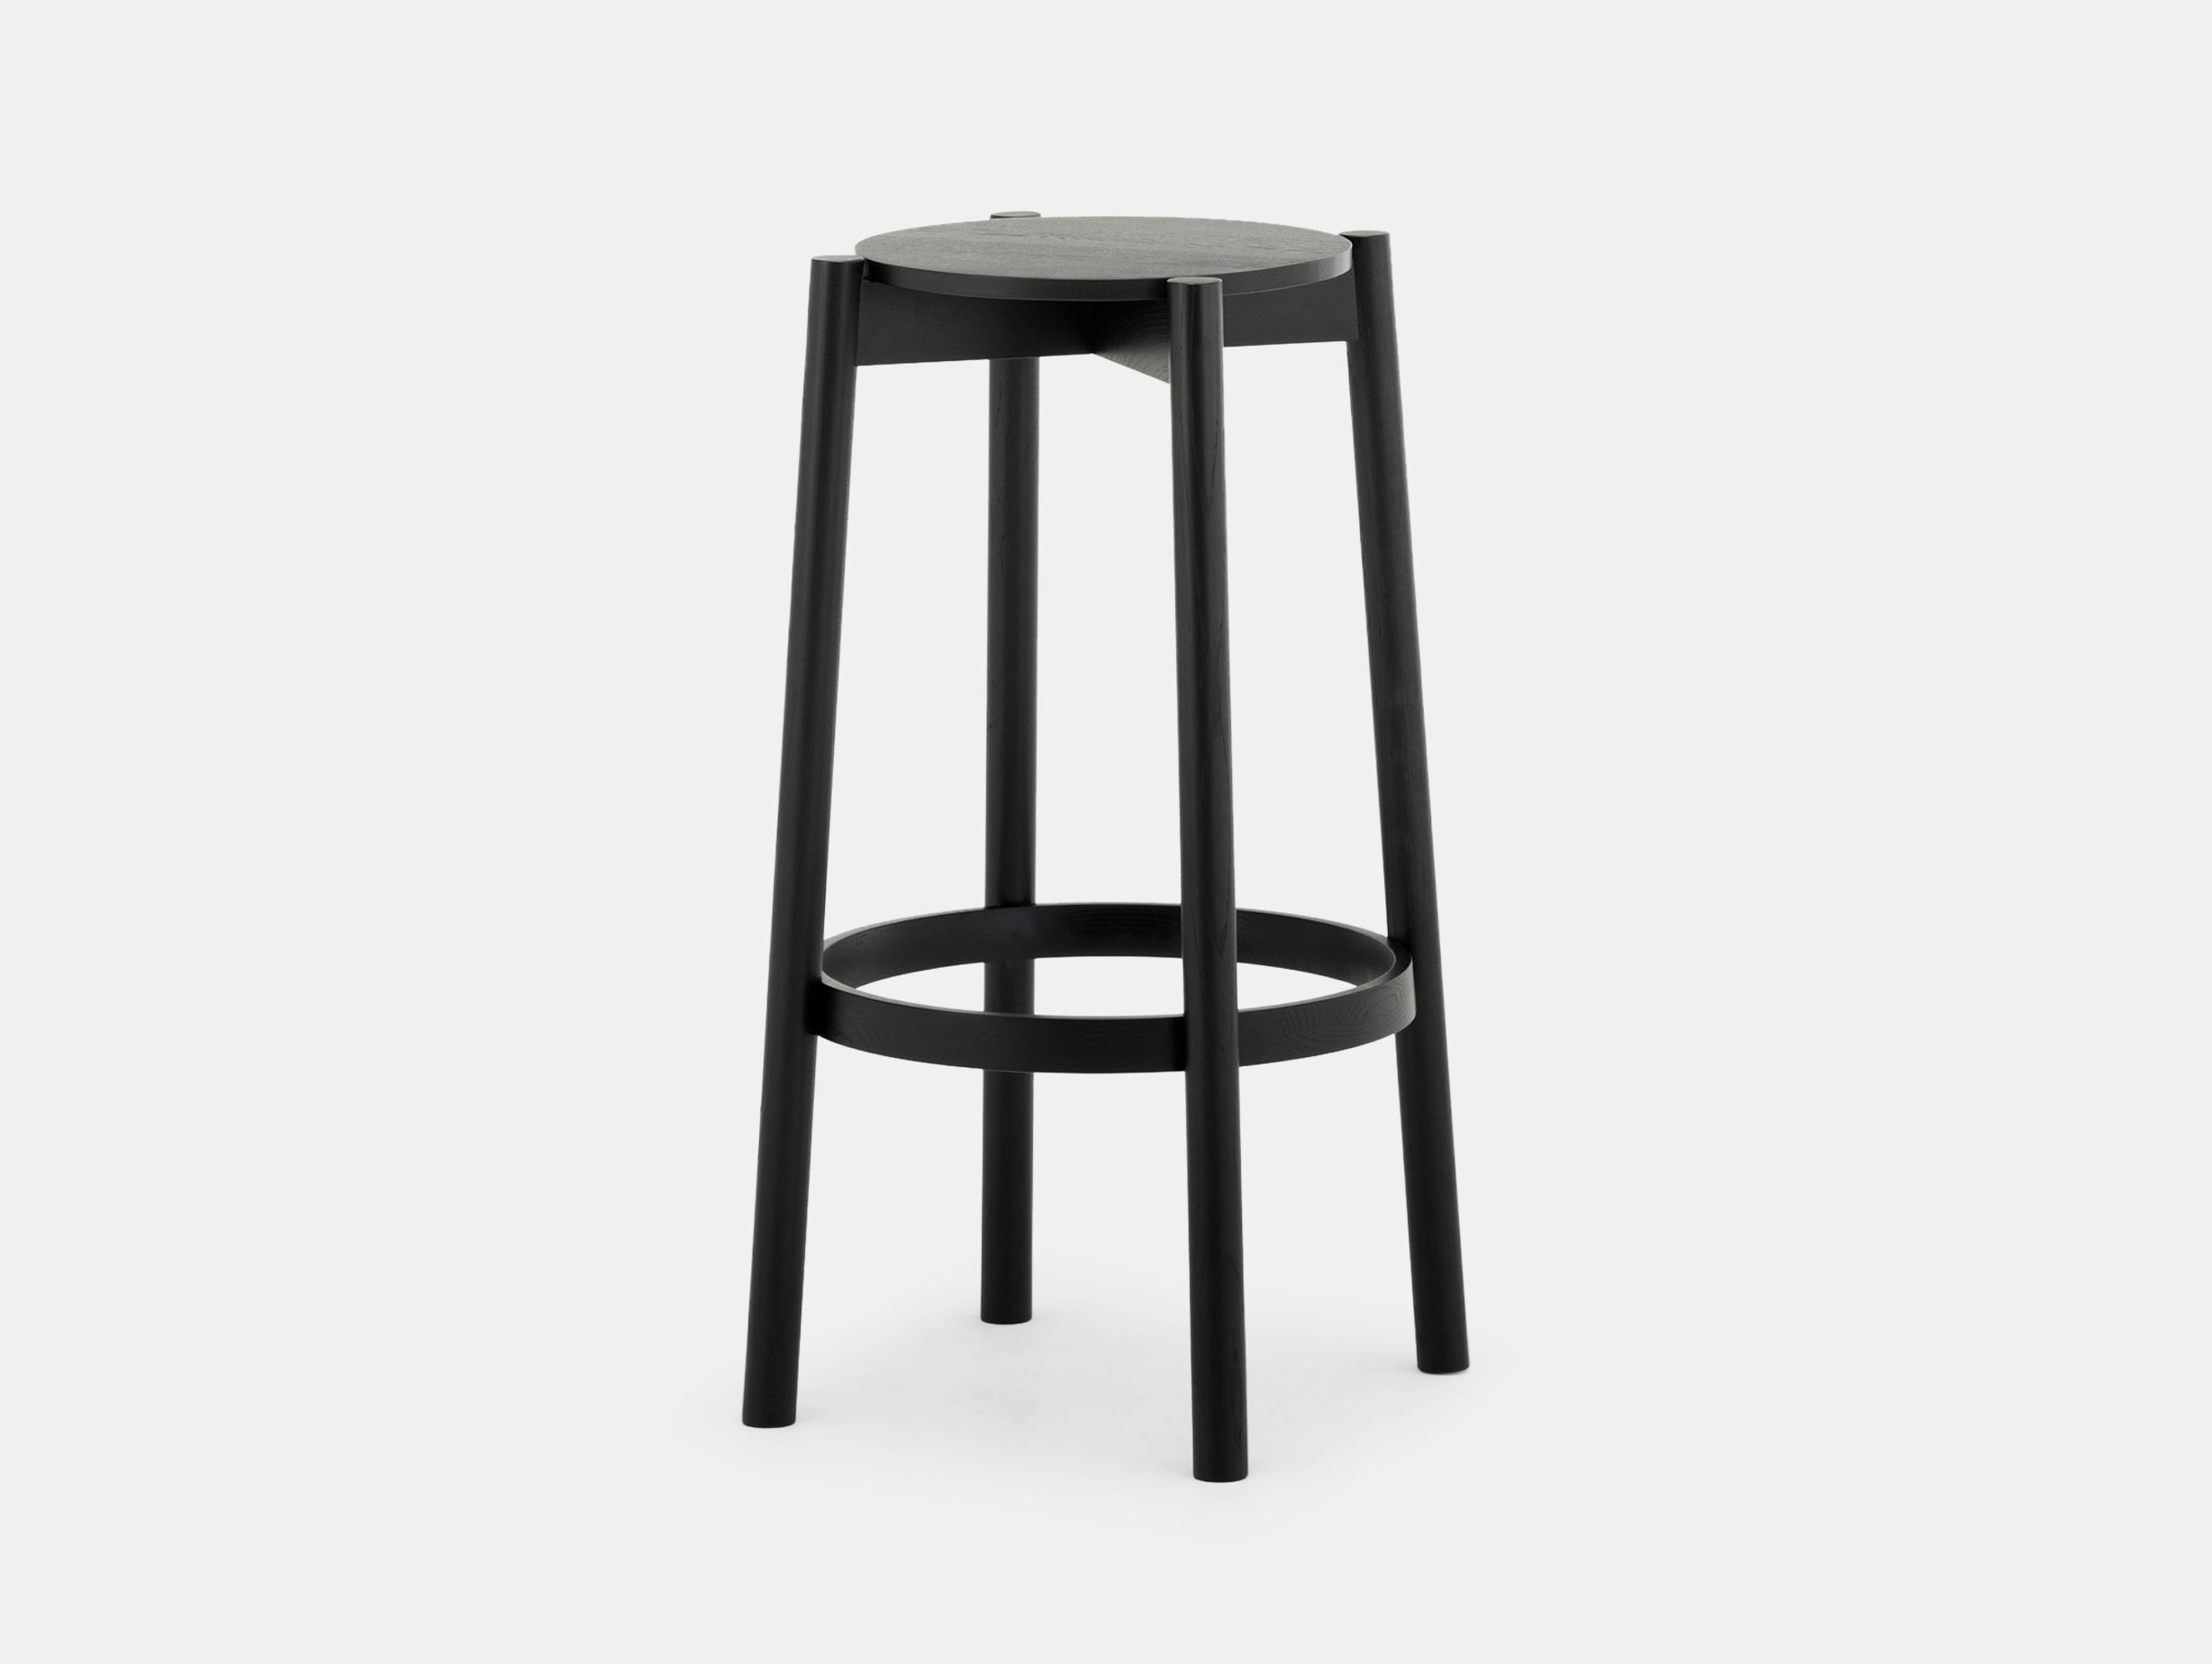 Castor Bar Stool image 1